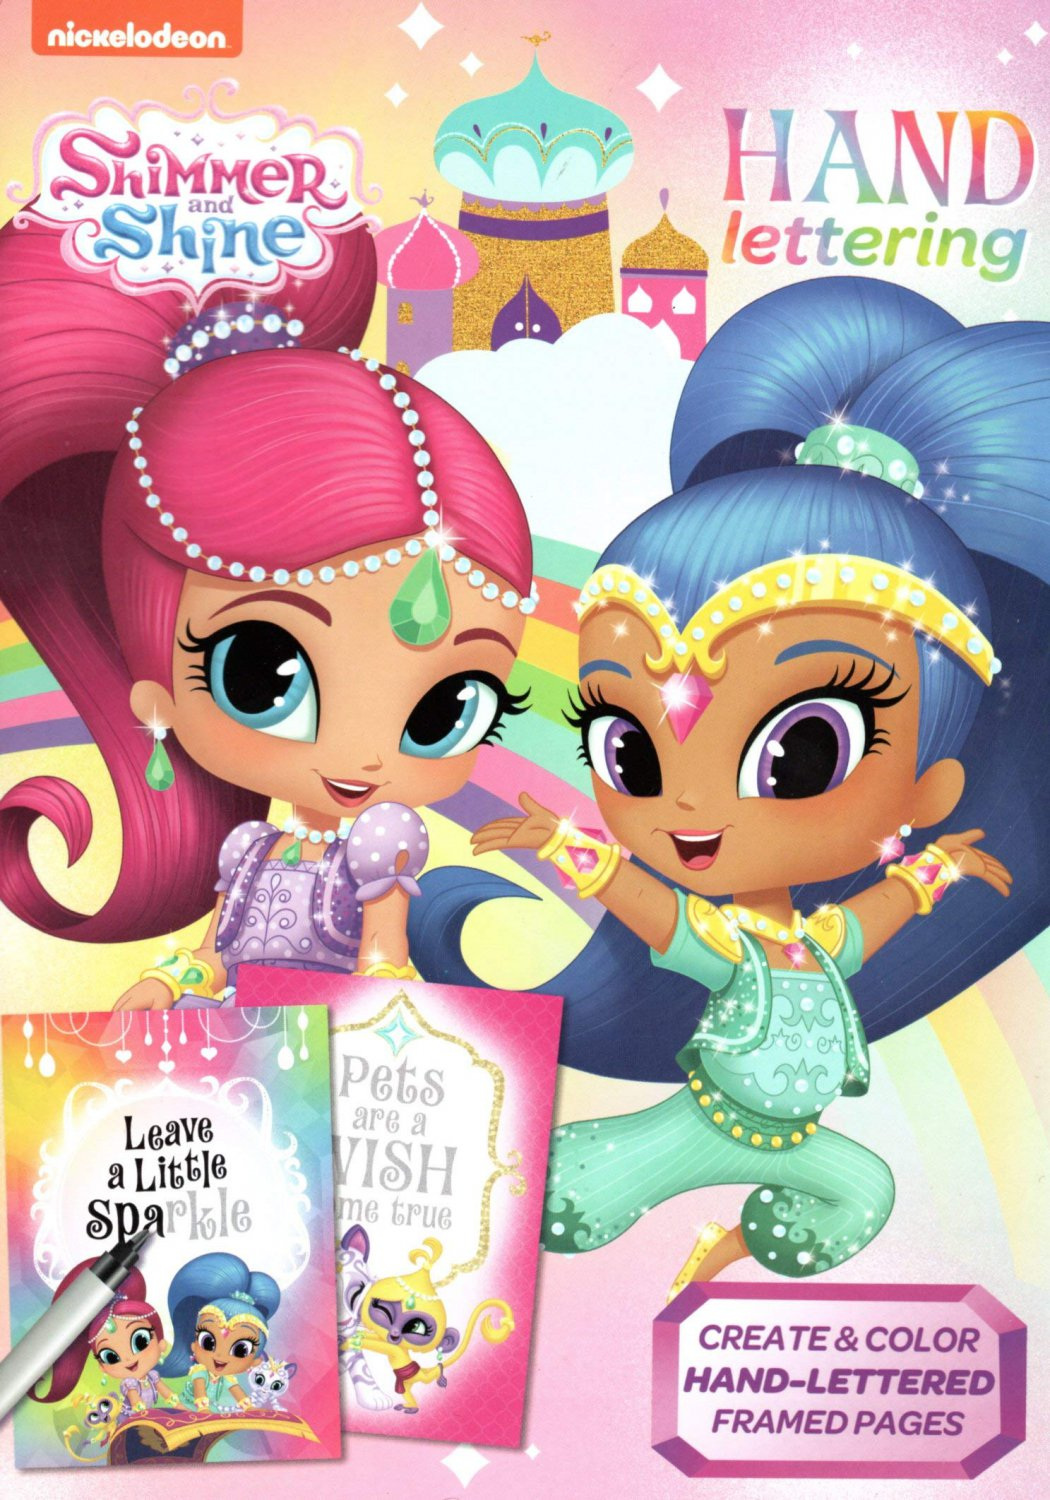 Shimmer and Shine - Hand Lettering & Doodles Activity & Coloring Book